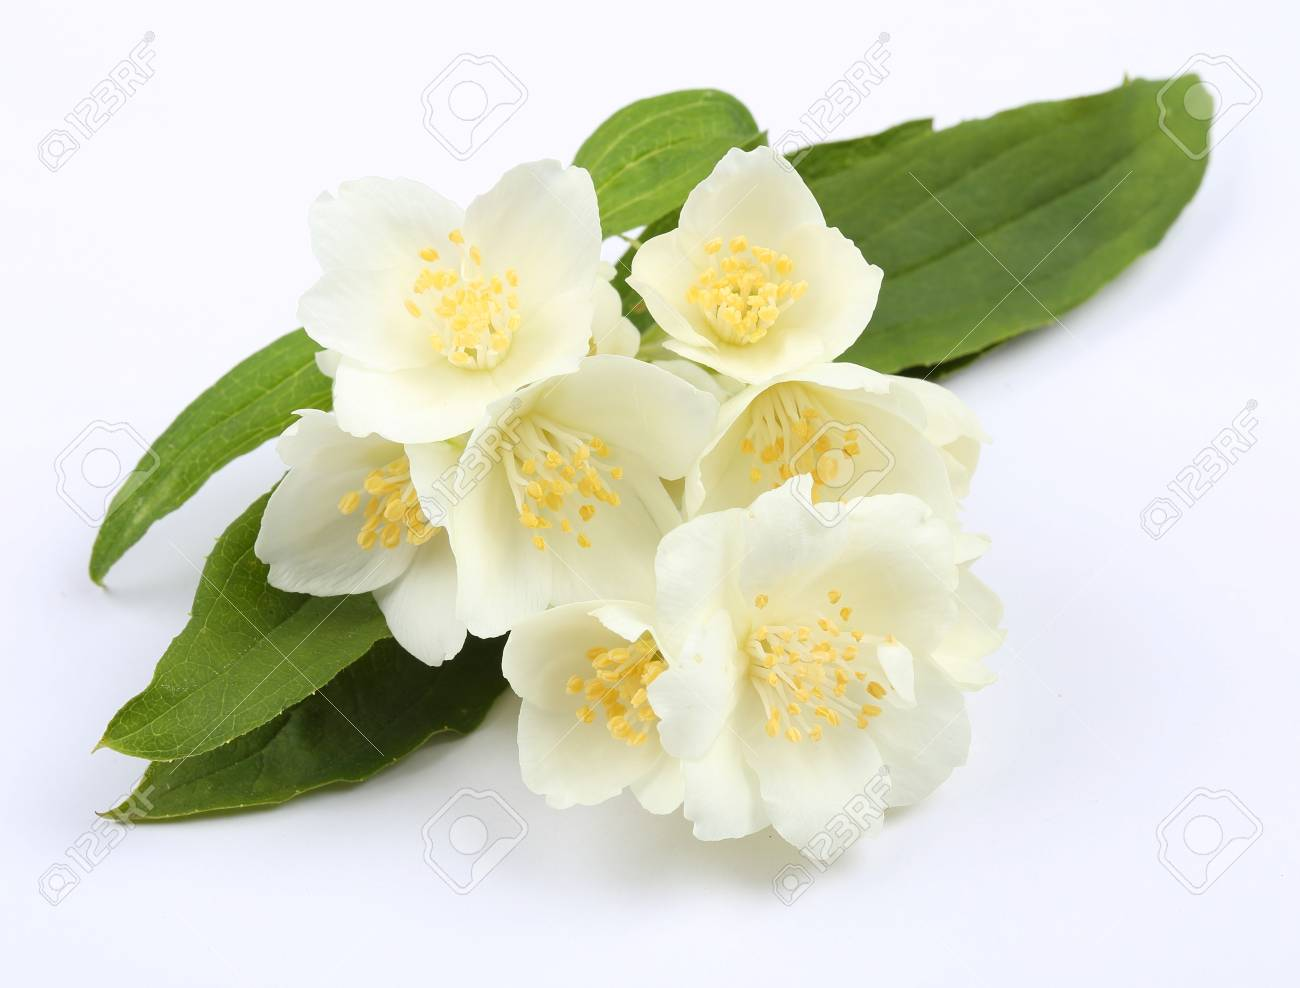 Blooming Jasmine On A White Background White Fragrant Flowers